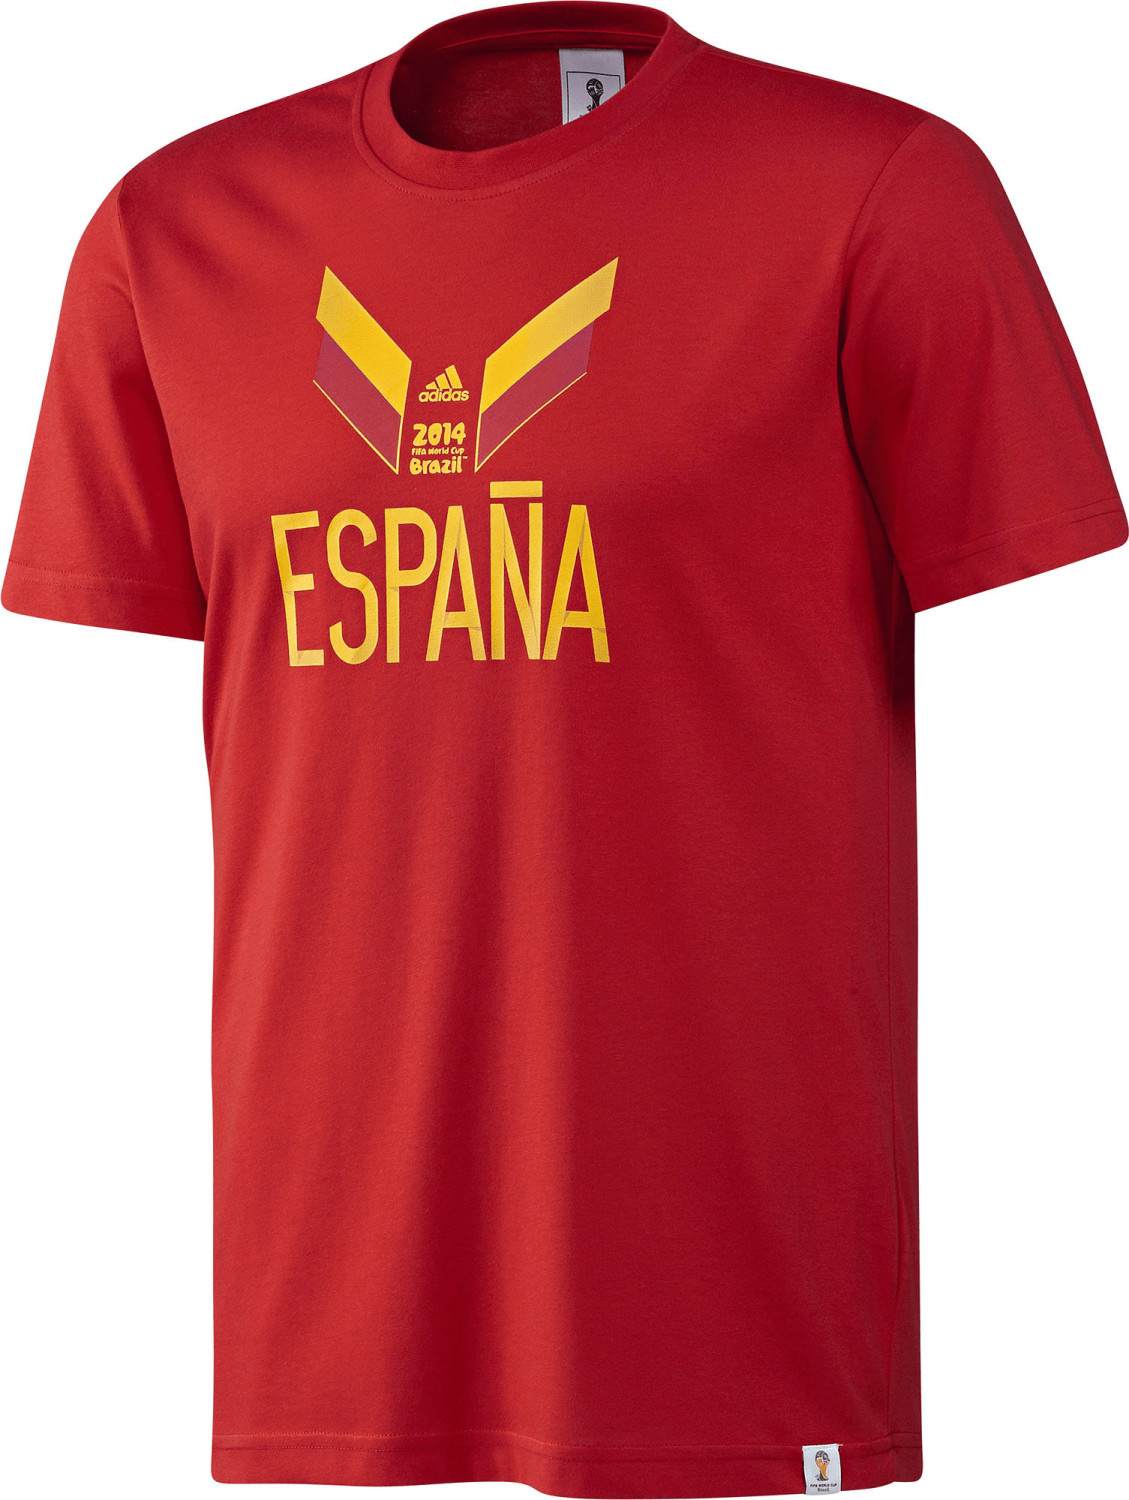 Adidas World Cup 2014 Spanien Graphic Tee